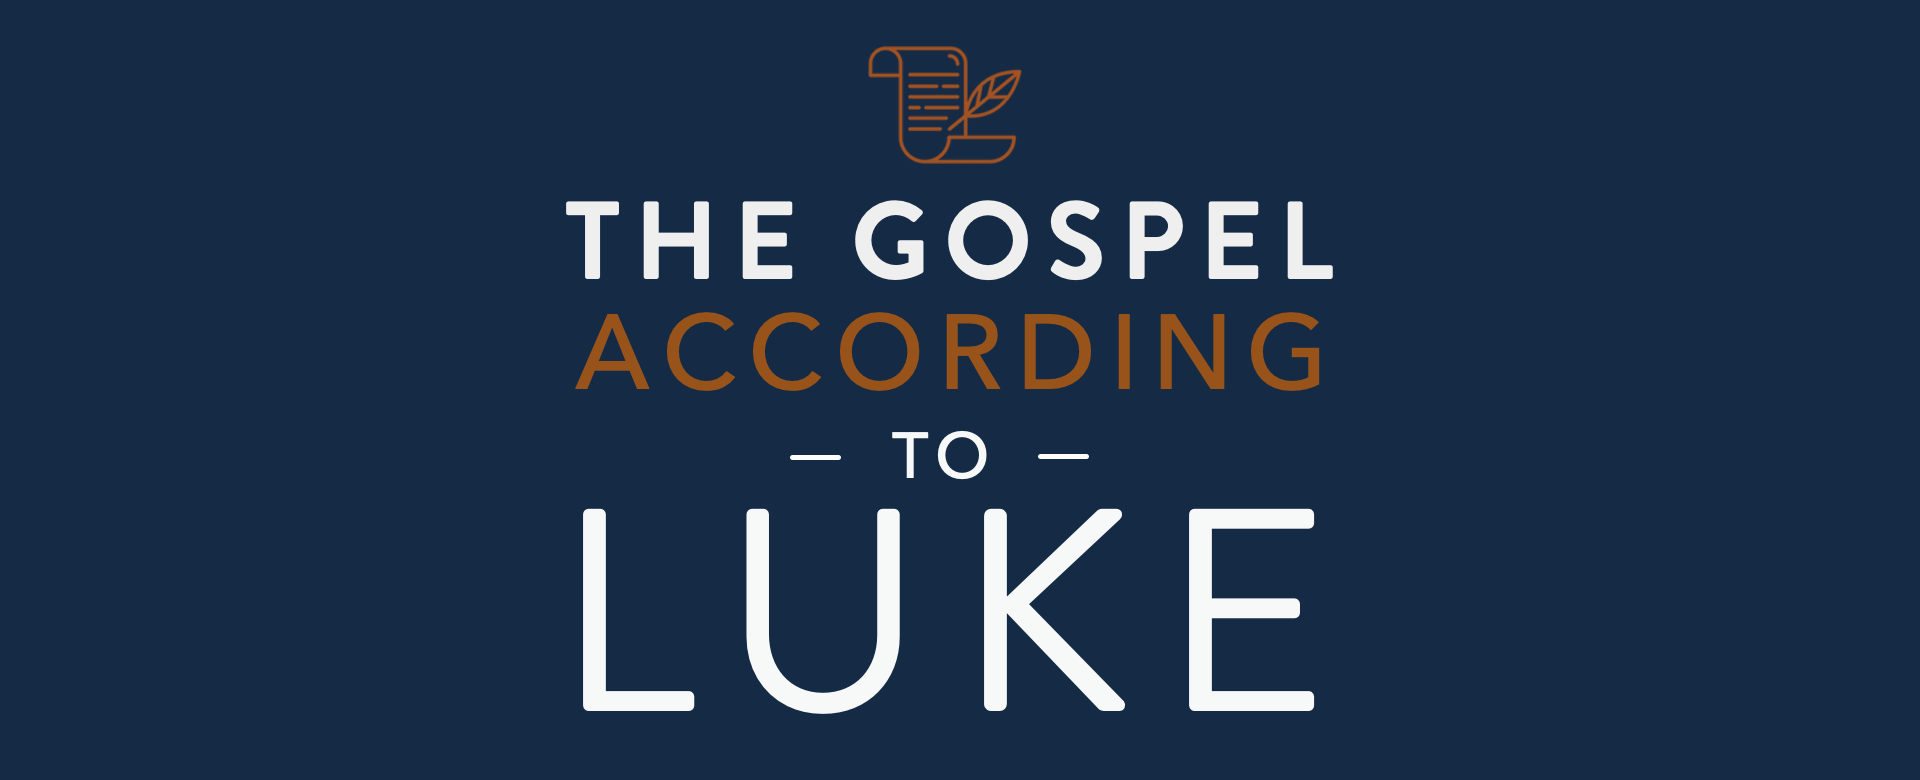 THe Gospel of Luke Final(1920x780).png